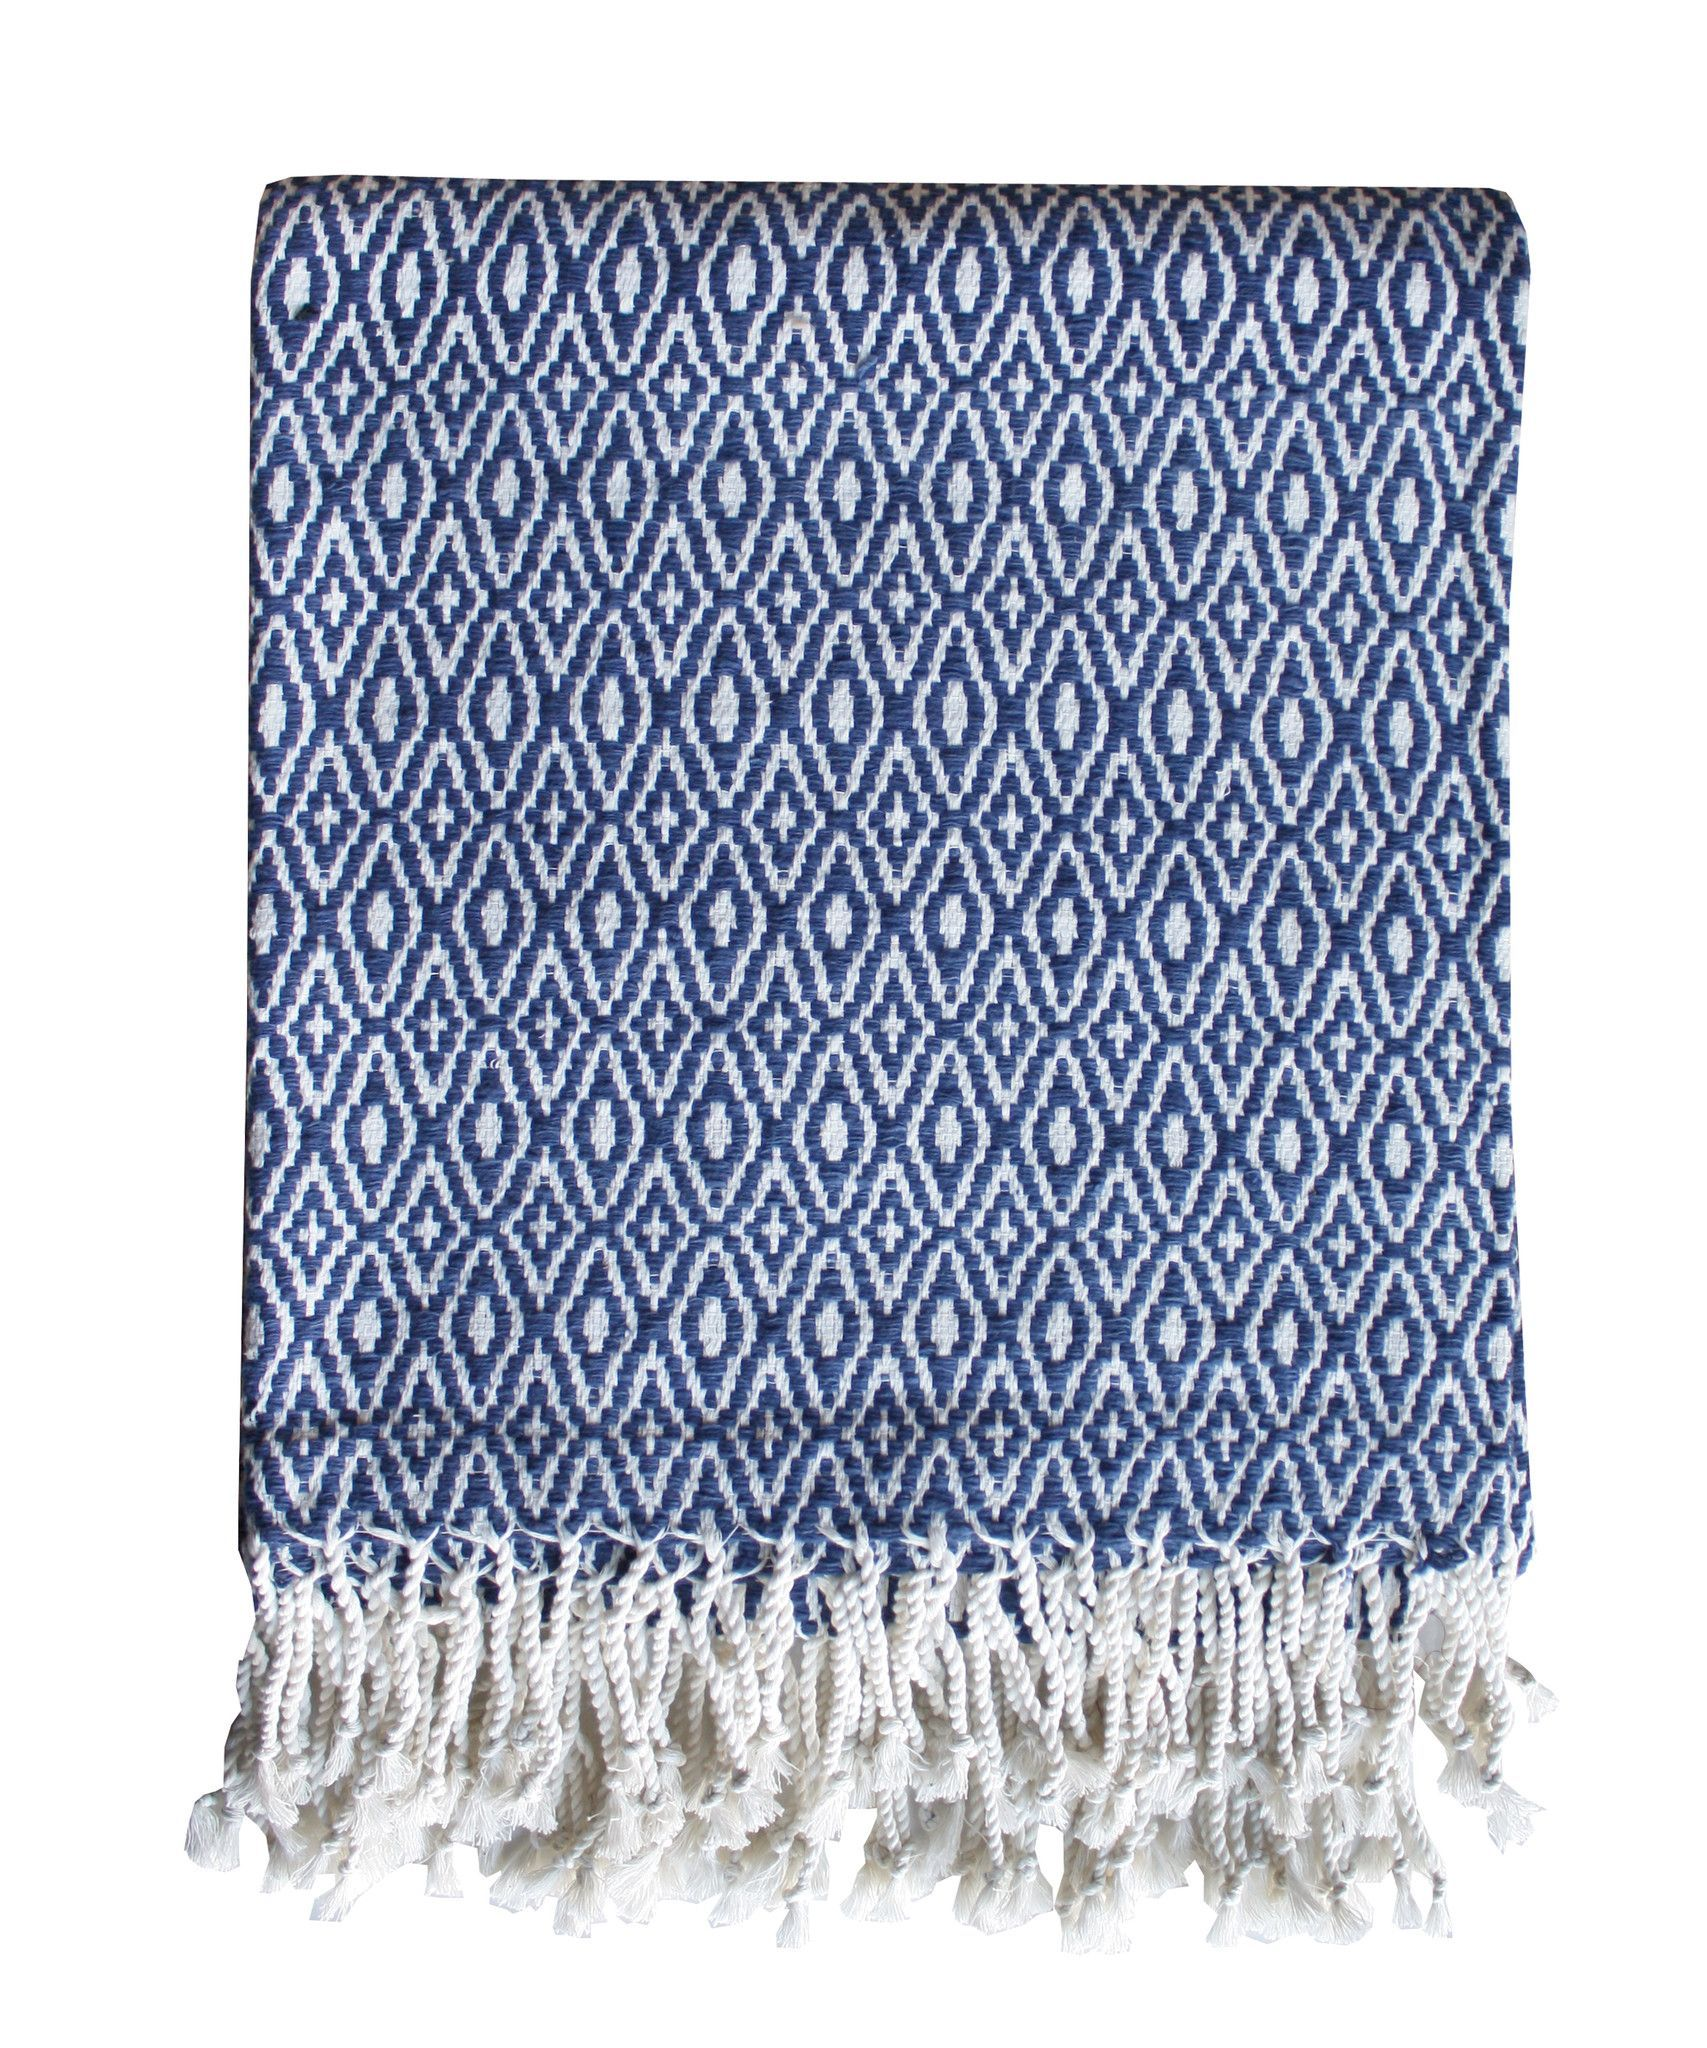 Diamond Weave Throw Blanket Navy & White 100% cotton diamond